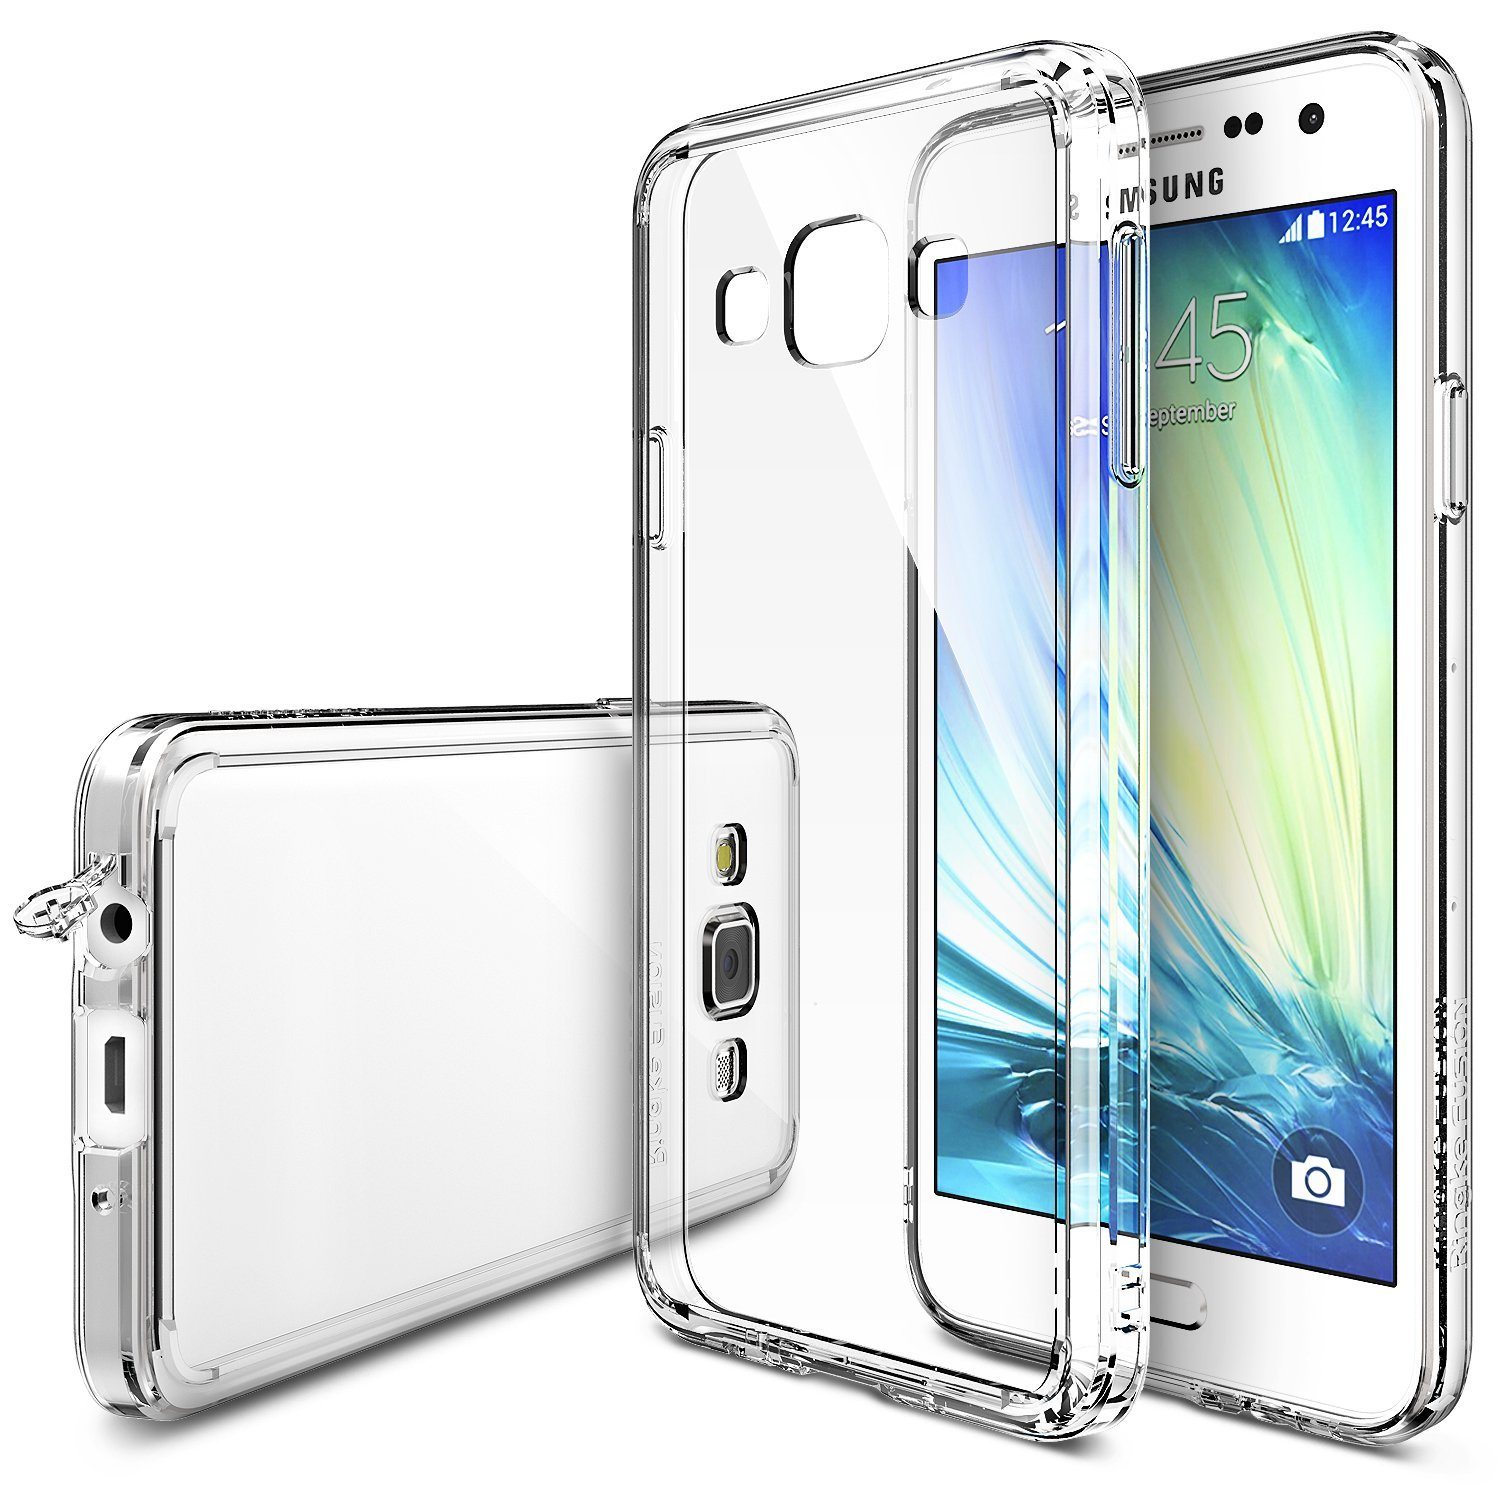 Samsung Galaxy A3 Fusion Bumper Case by Ringke [Clear] Featuring Shock Absorption TPU Bumper with Clear Hard Polycarbonate Back & Screen Protector